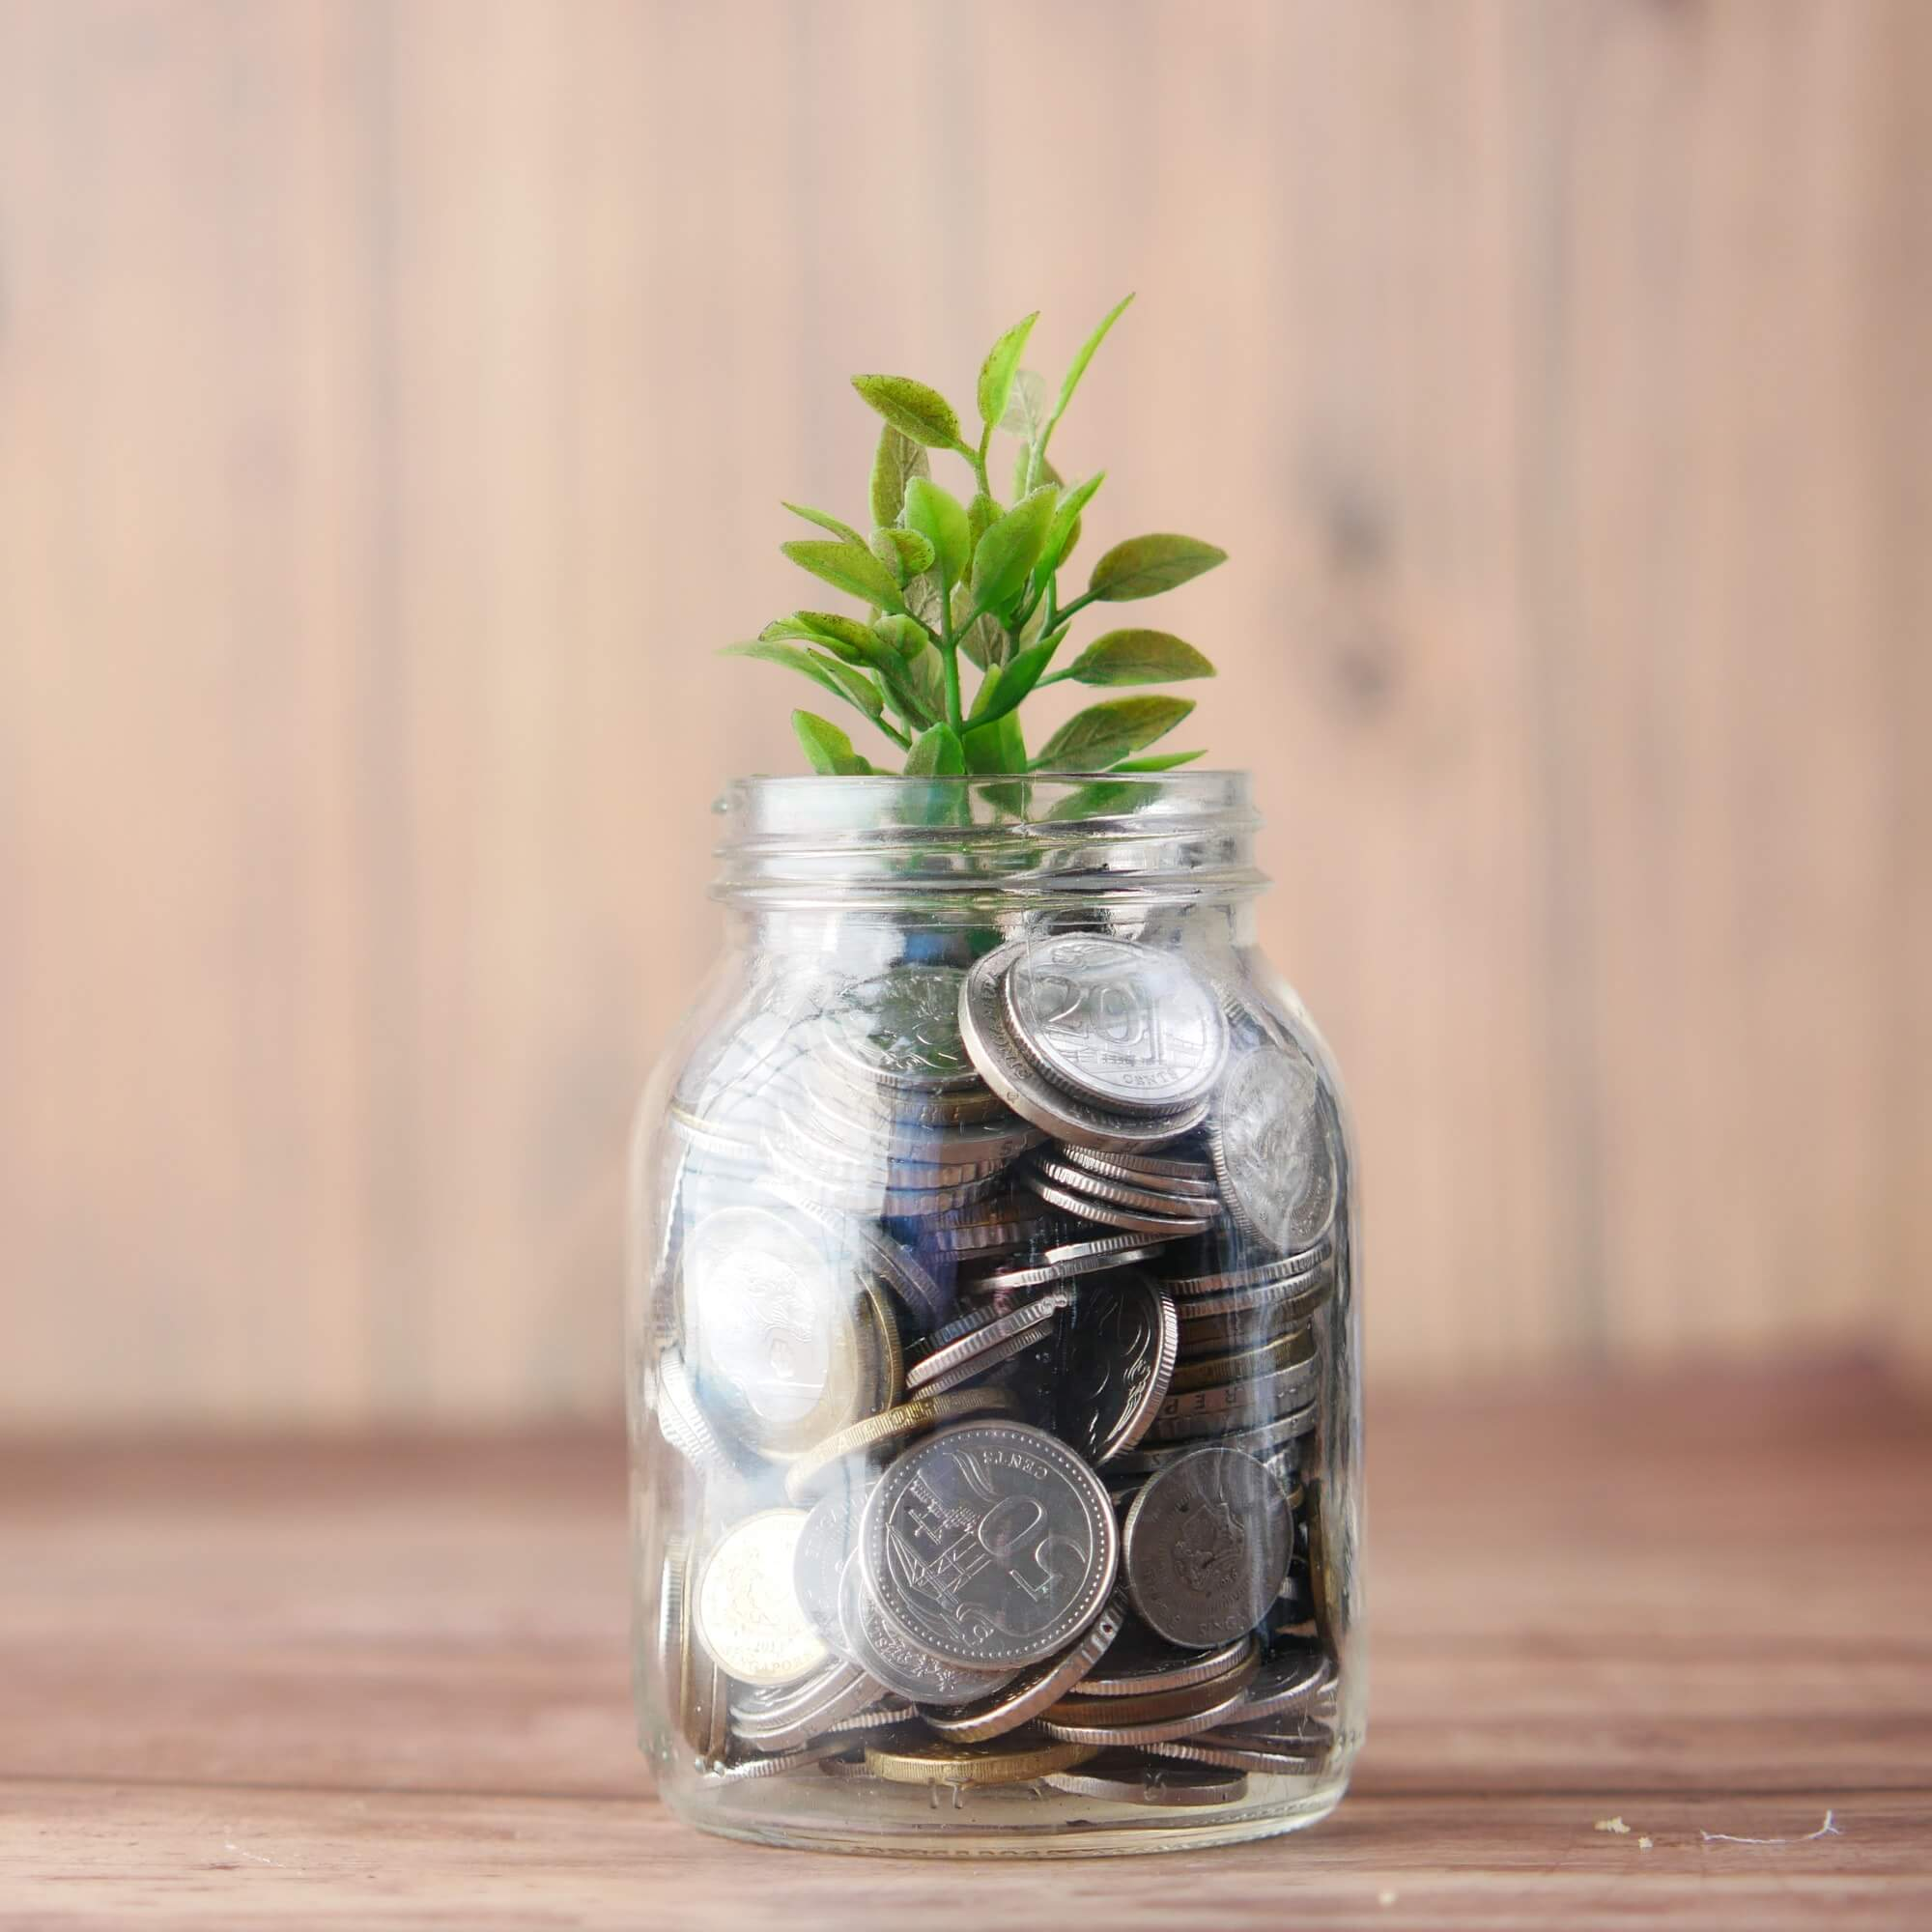 A jar containing silver coins, a plant is sprouting out of the top of the jar.